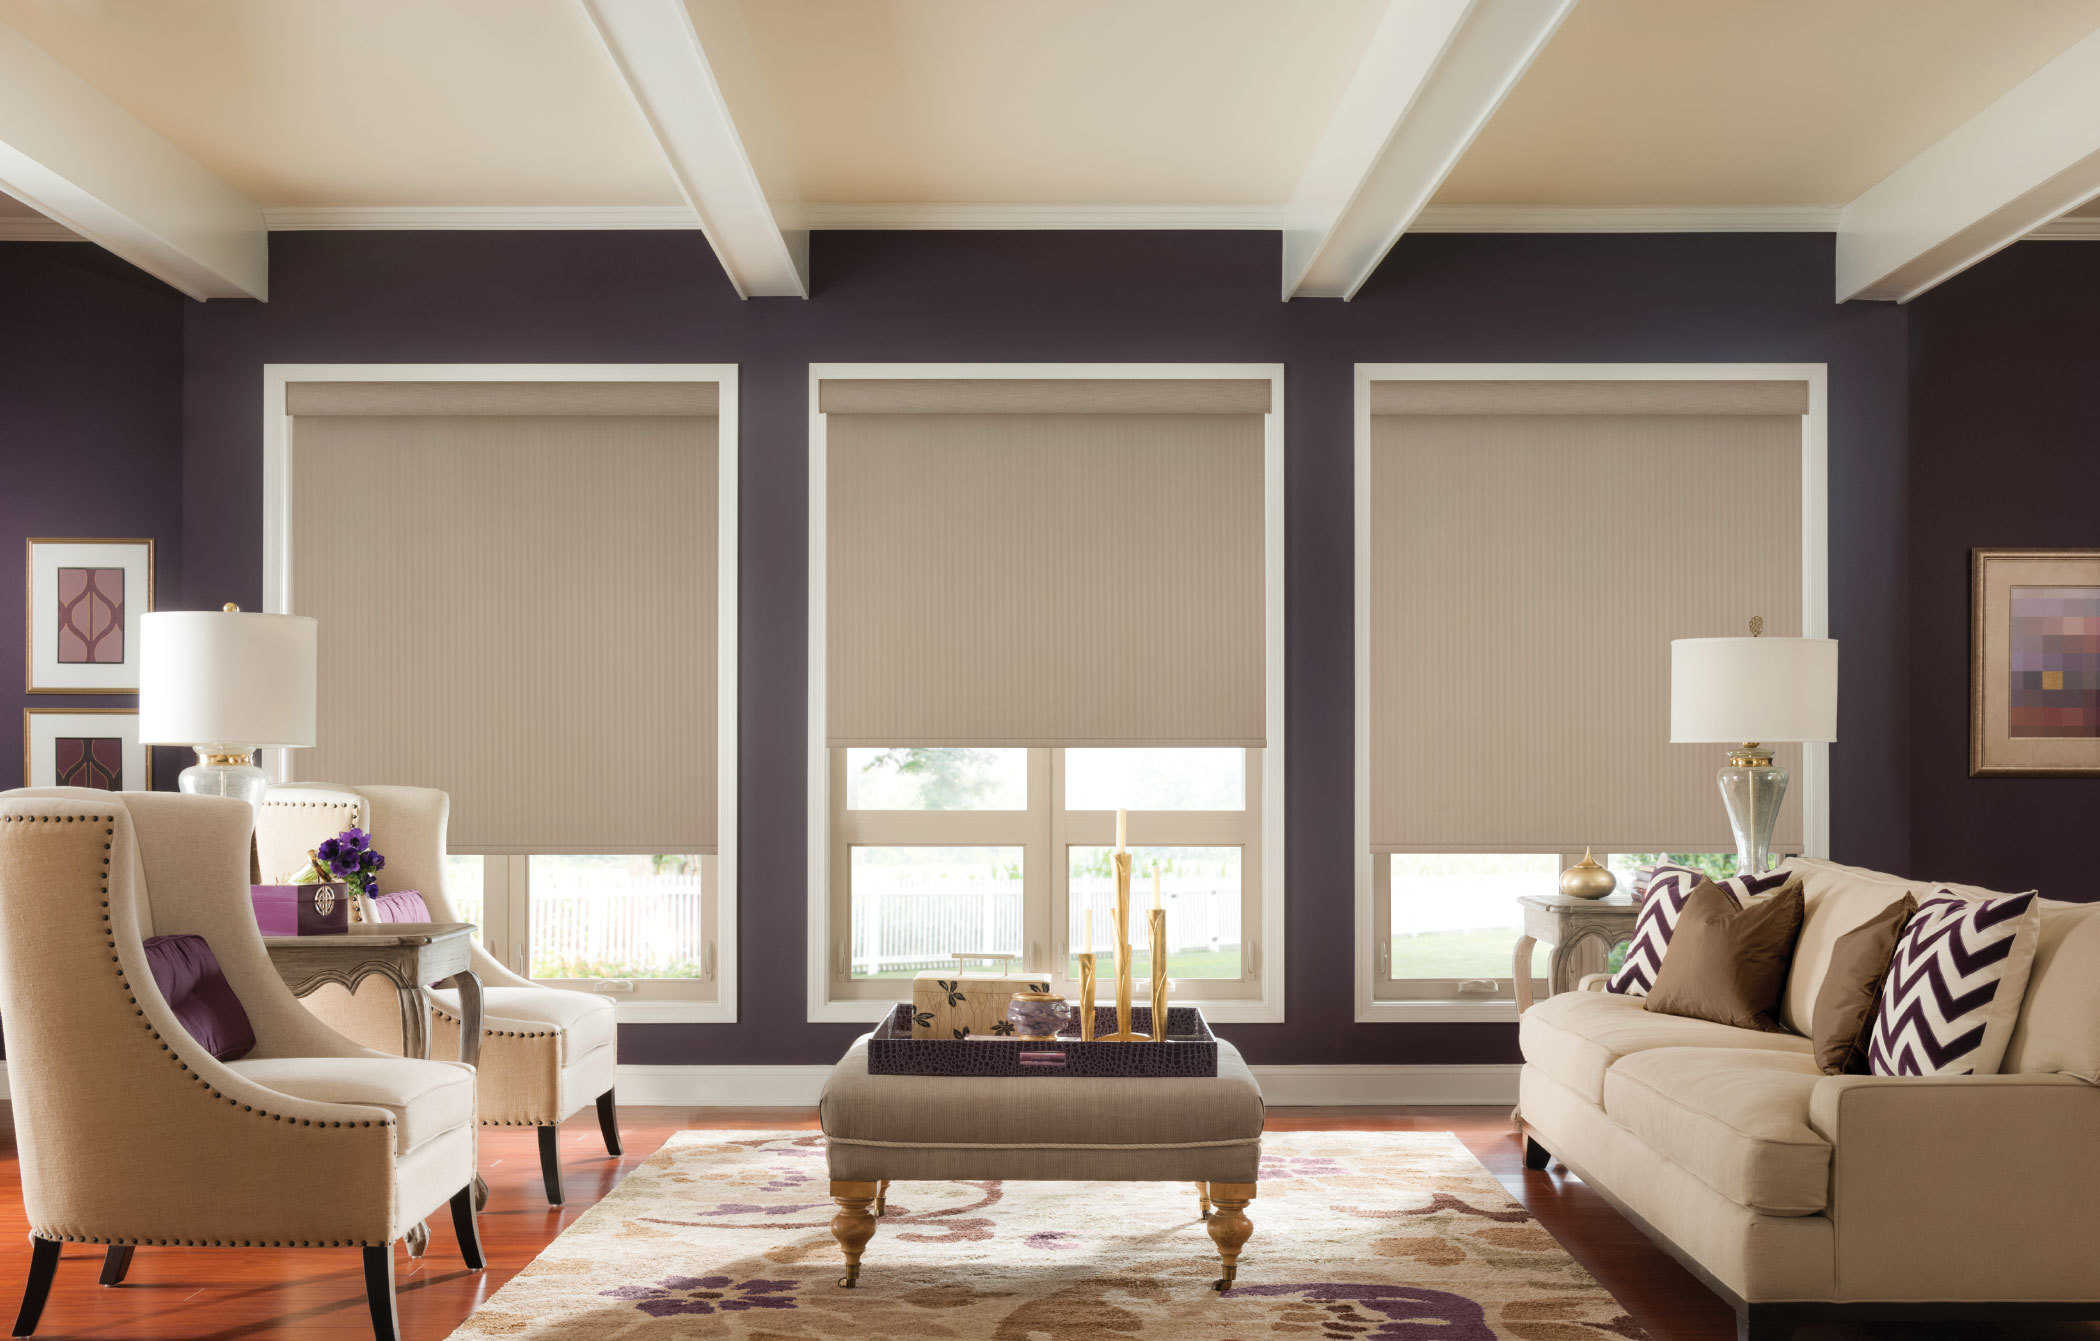 Fabric Roller Shades 2 Jacksonville Blinds Jacksonville Shutters Jacksonville Window Treatments